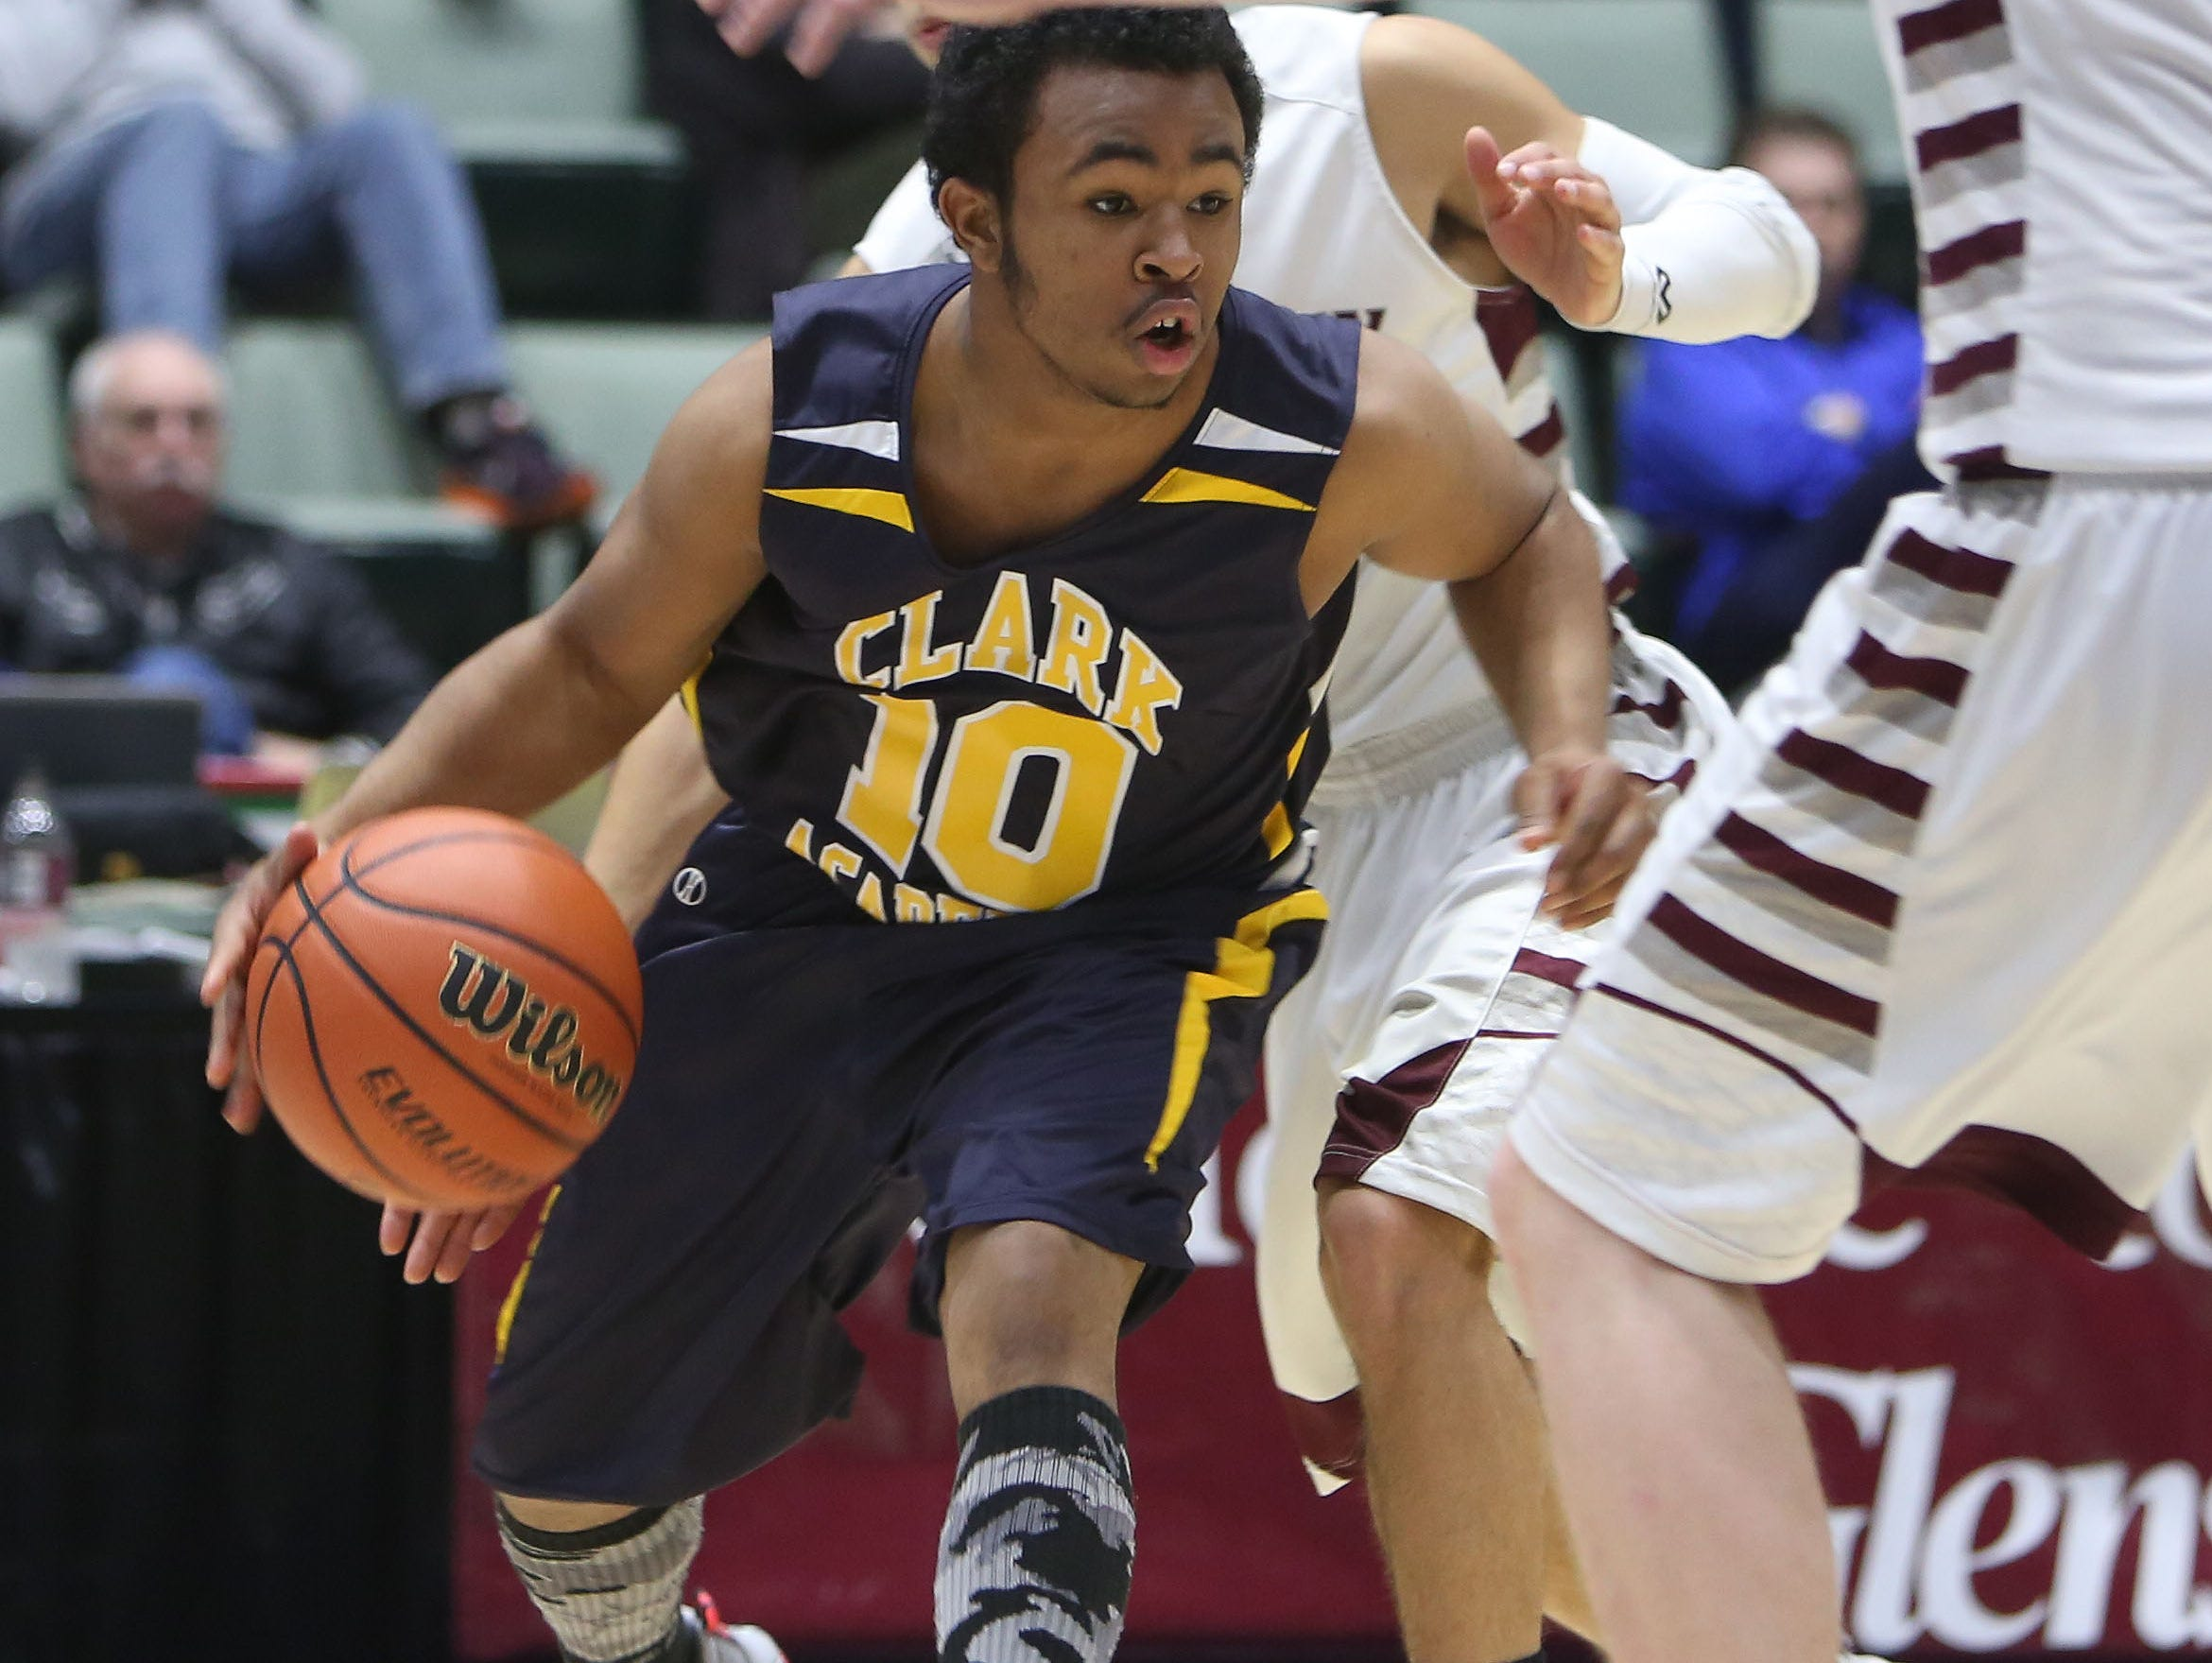 Clark Academy's Brice Banks (10) tries to drive to the basket against Oriskany during the boys Class D semifinal at the Glens Falls Civic Center March 11, 2016. Oriskany won the game 59-40.